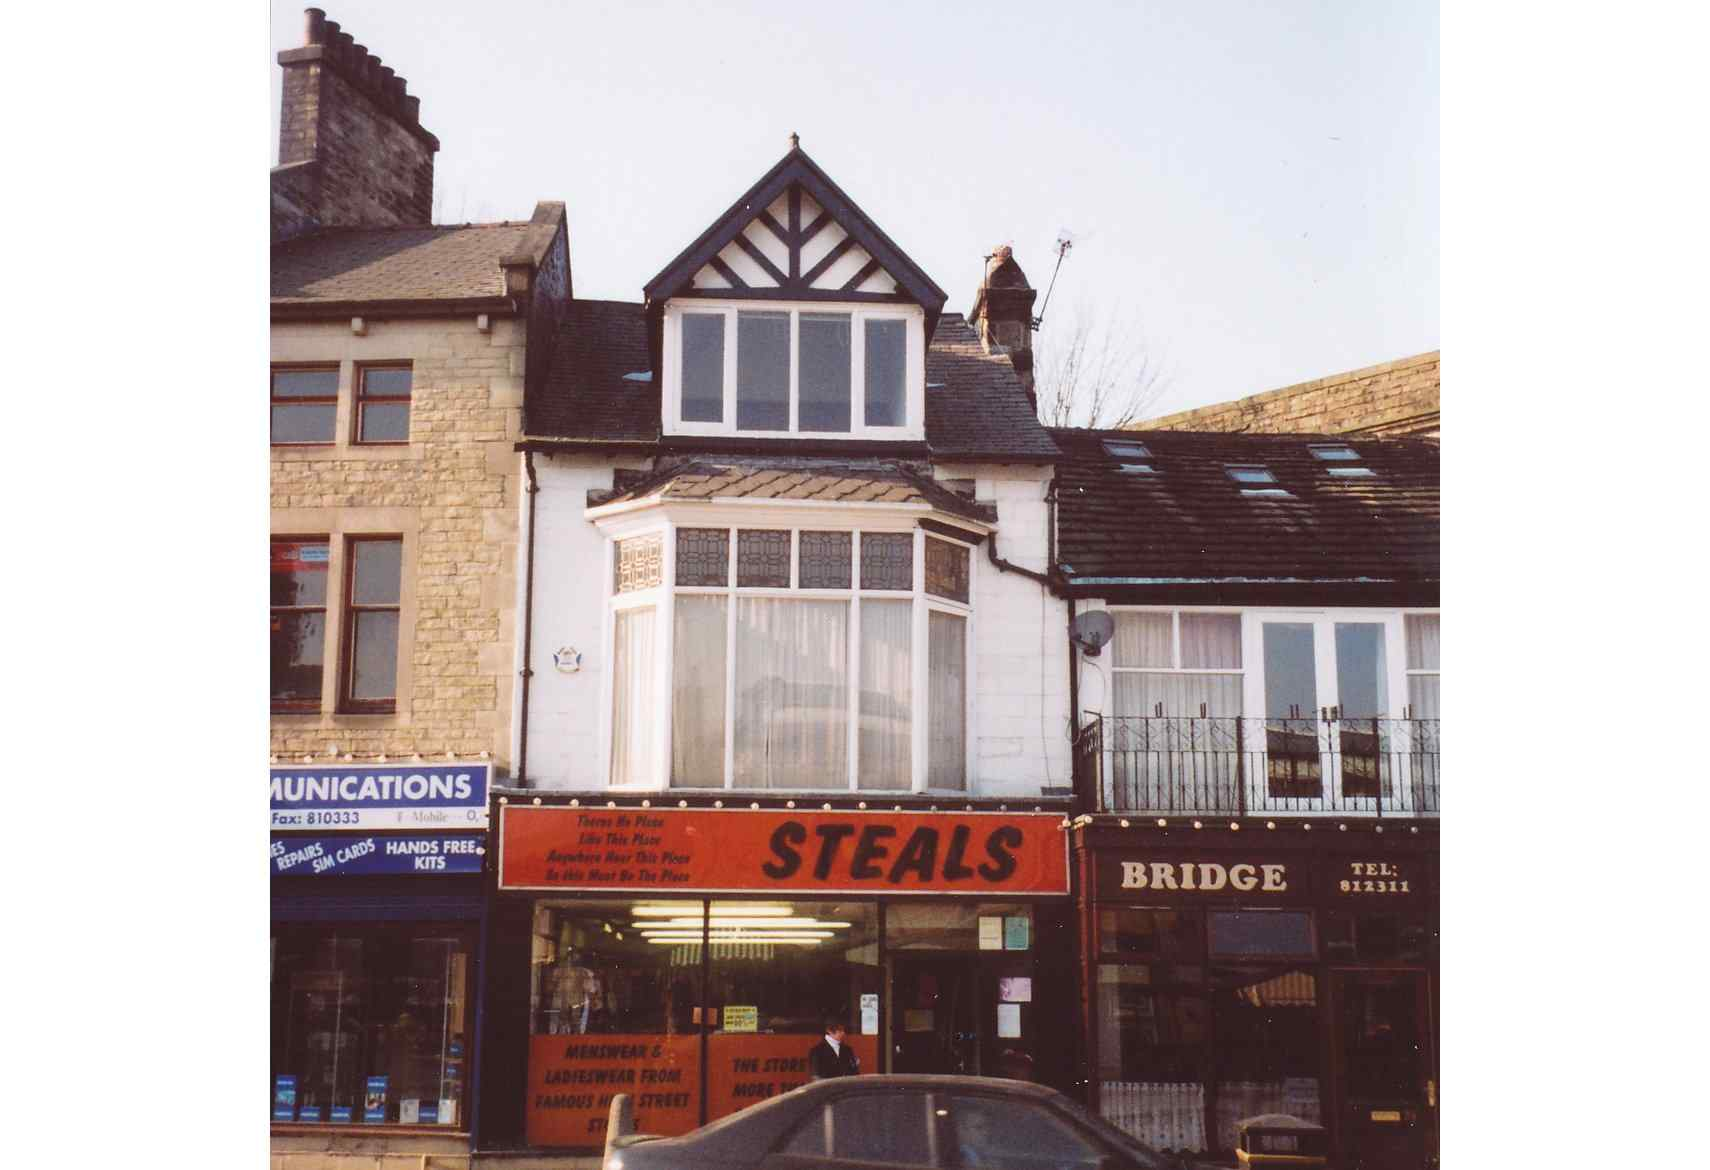 37 Burnley Road, Todmorden; as 'Steals' (now Costermongers)